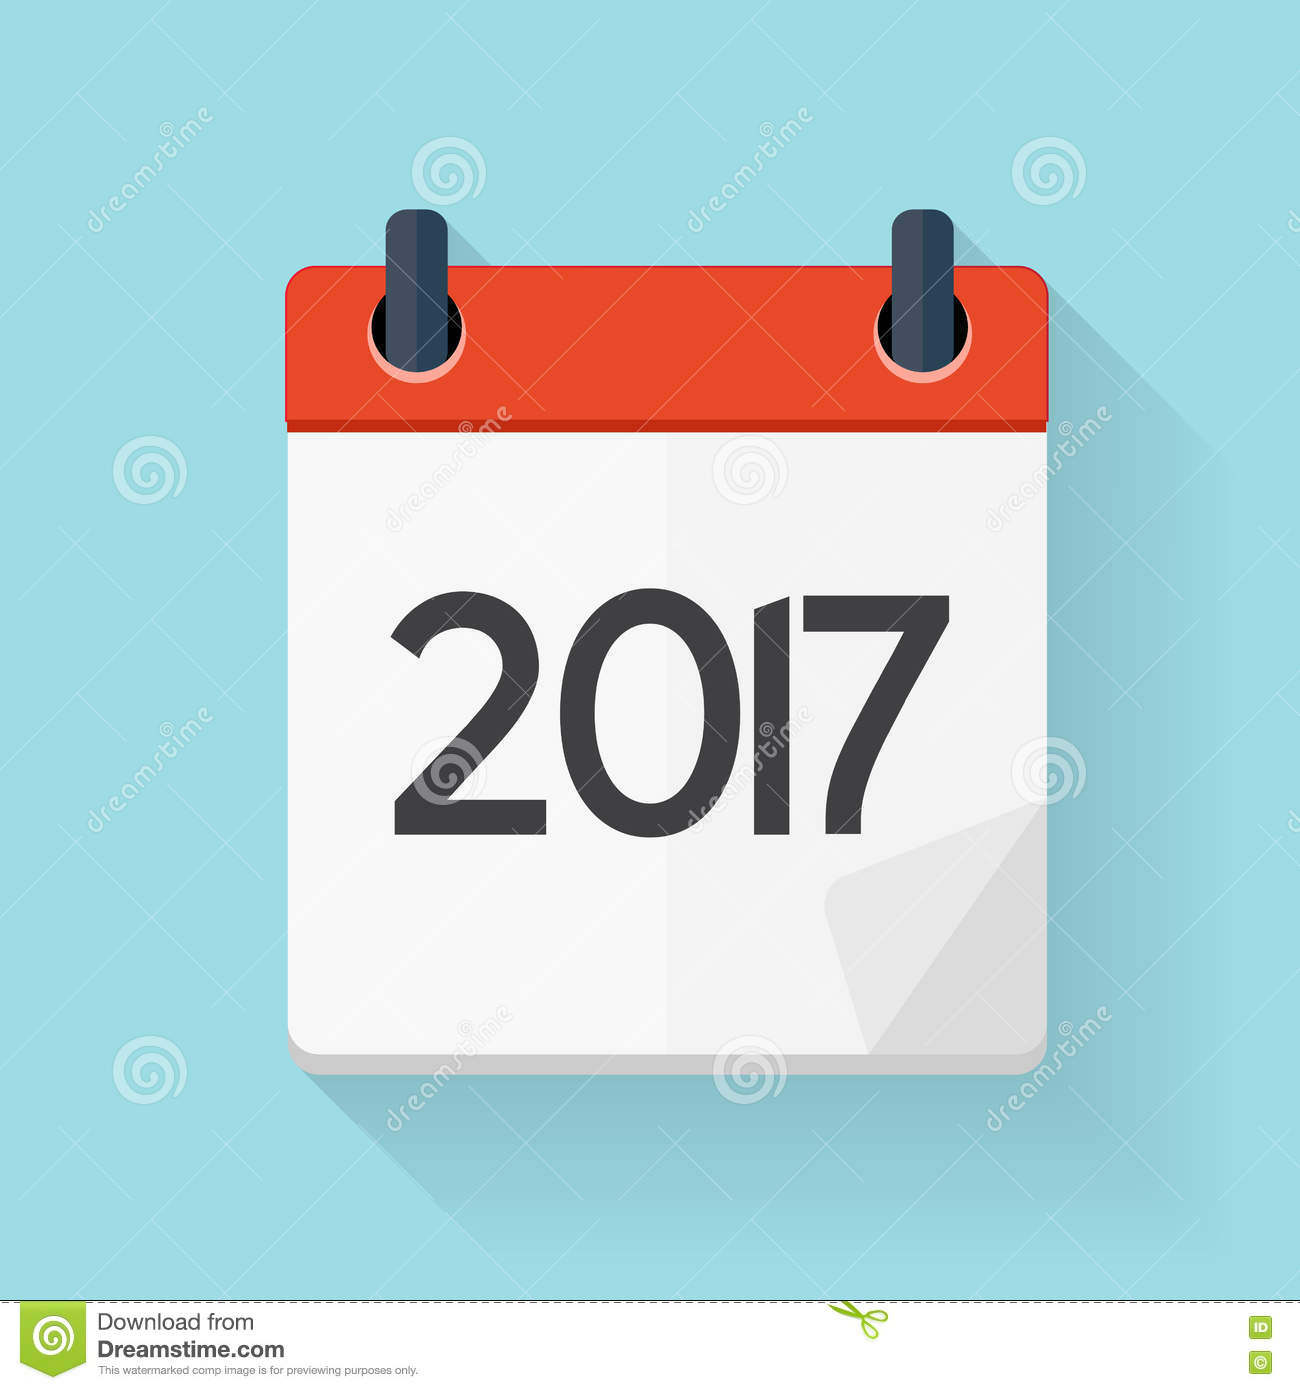 Calendar Design Free Vector : Calendar flat daily icon vector illustration emblem